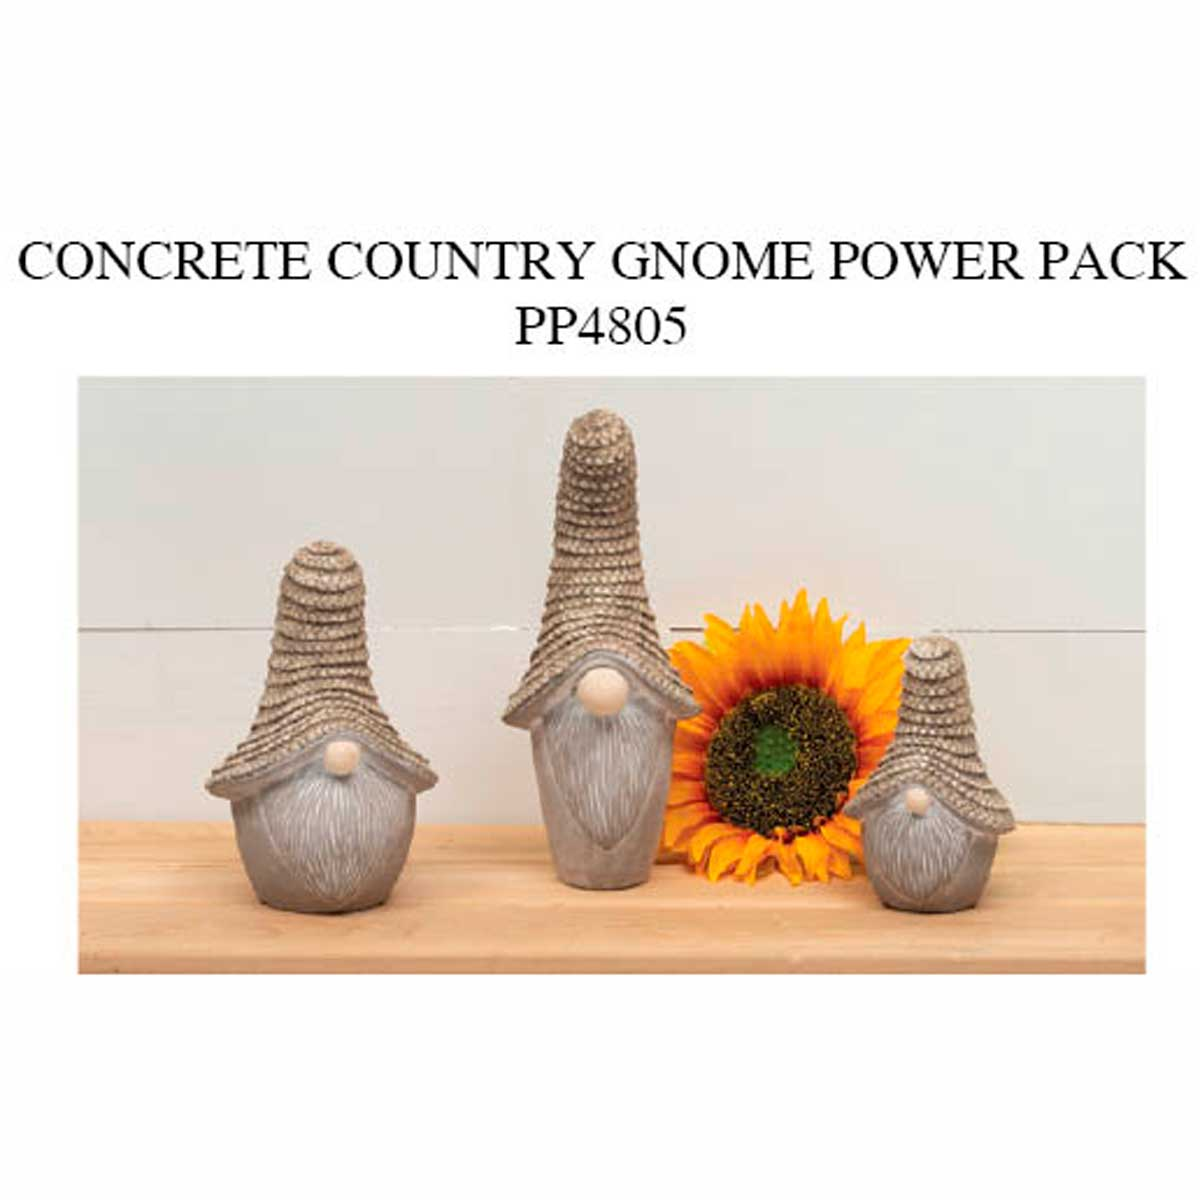 Country Gnome Power Pack 8 units PP4805